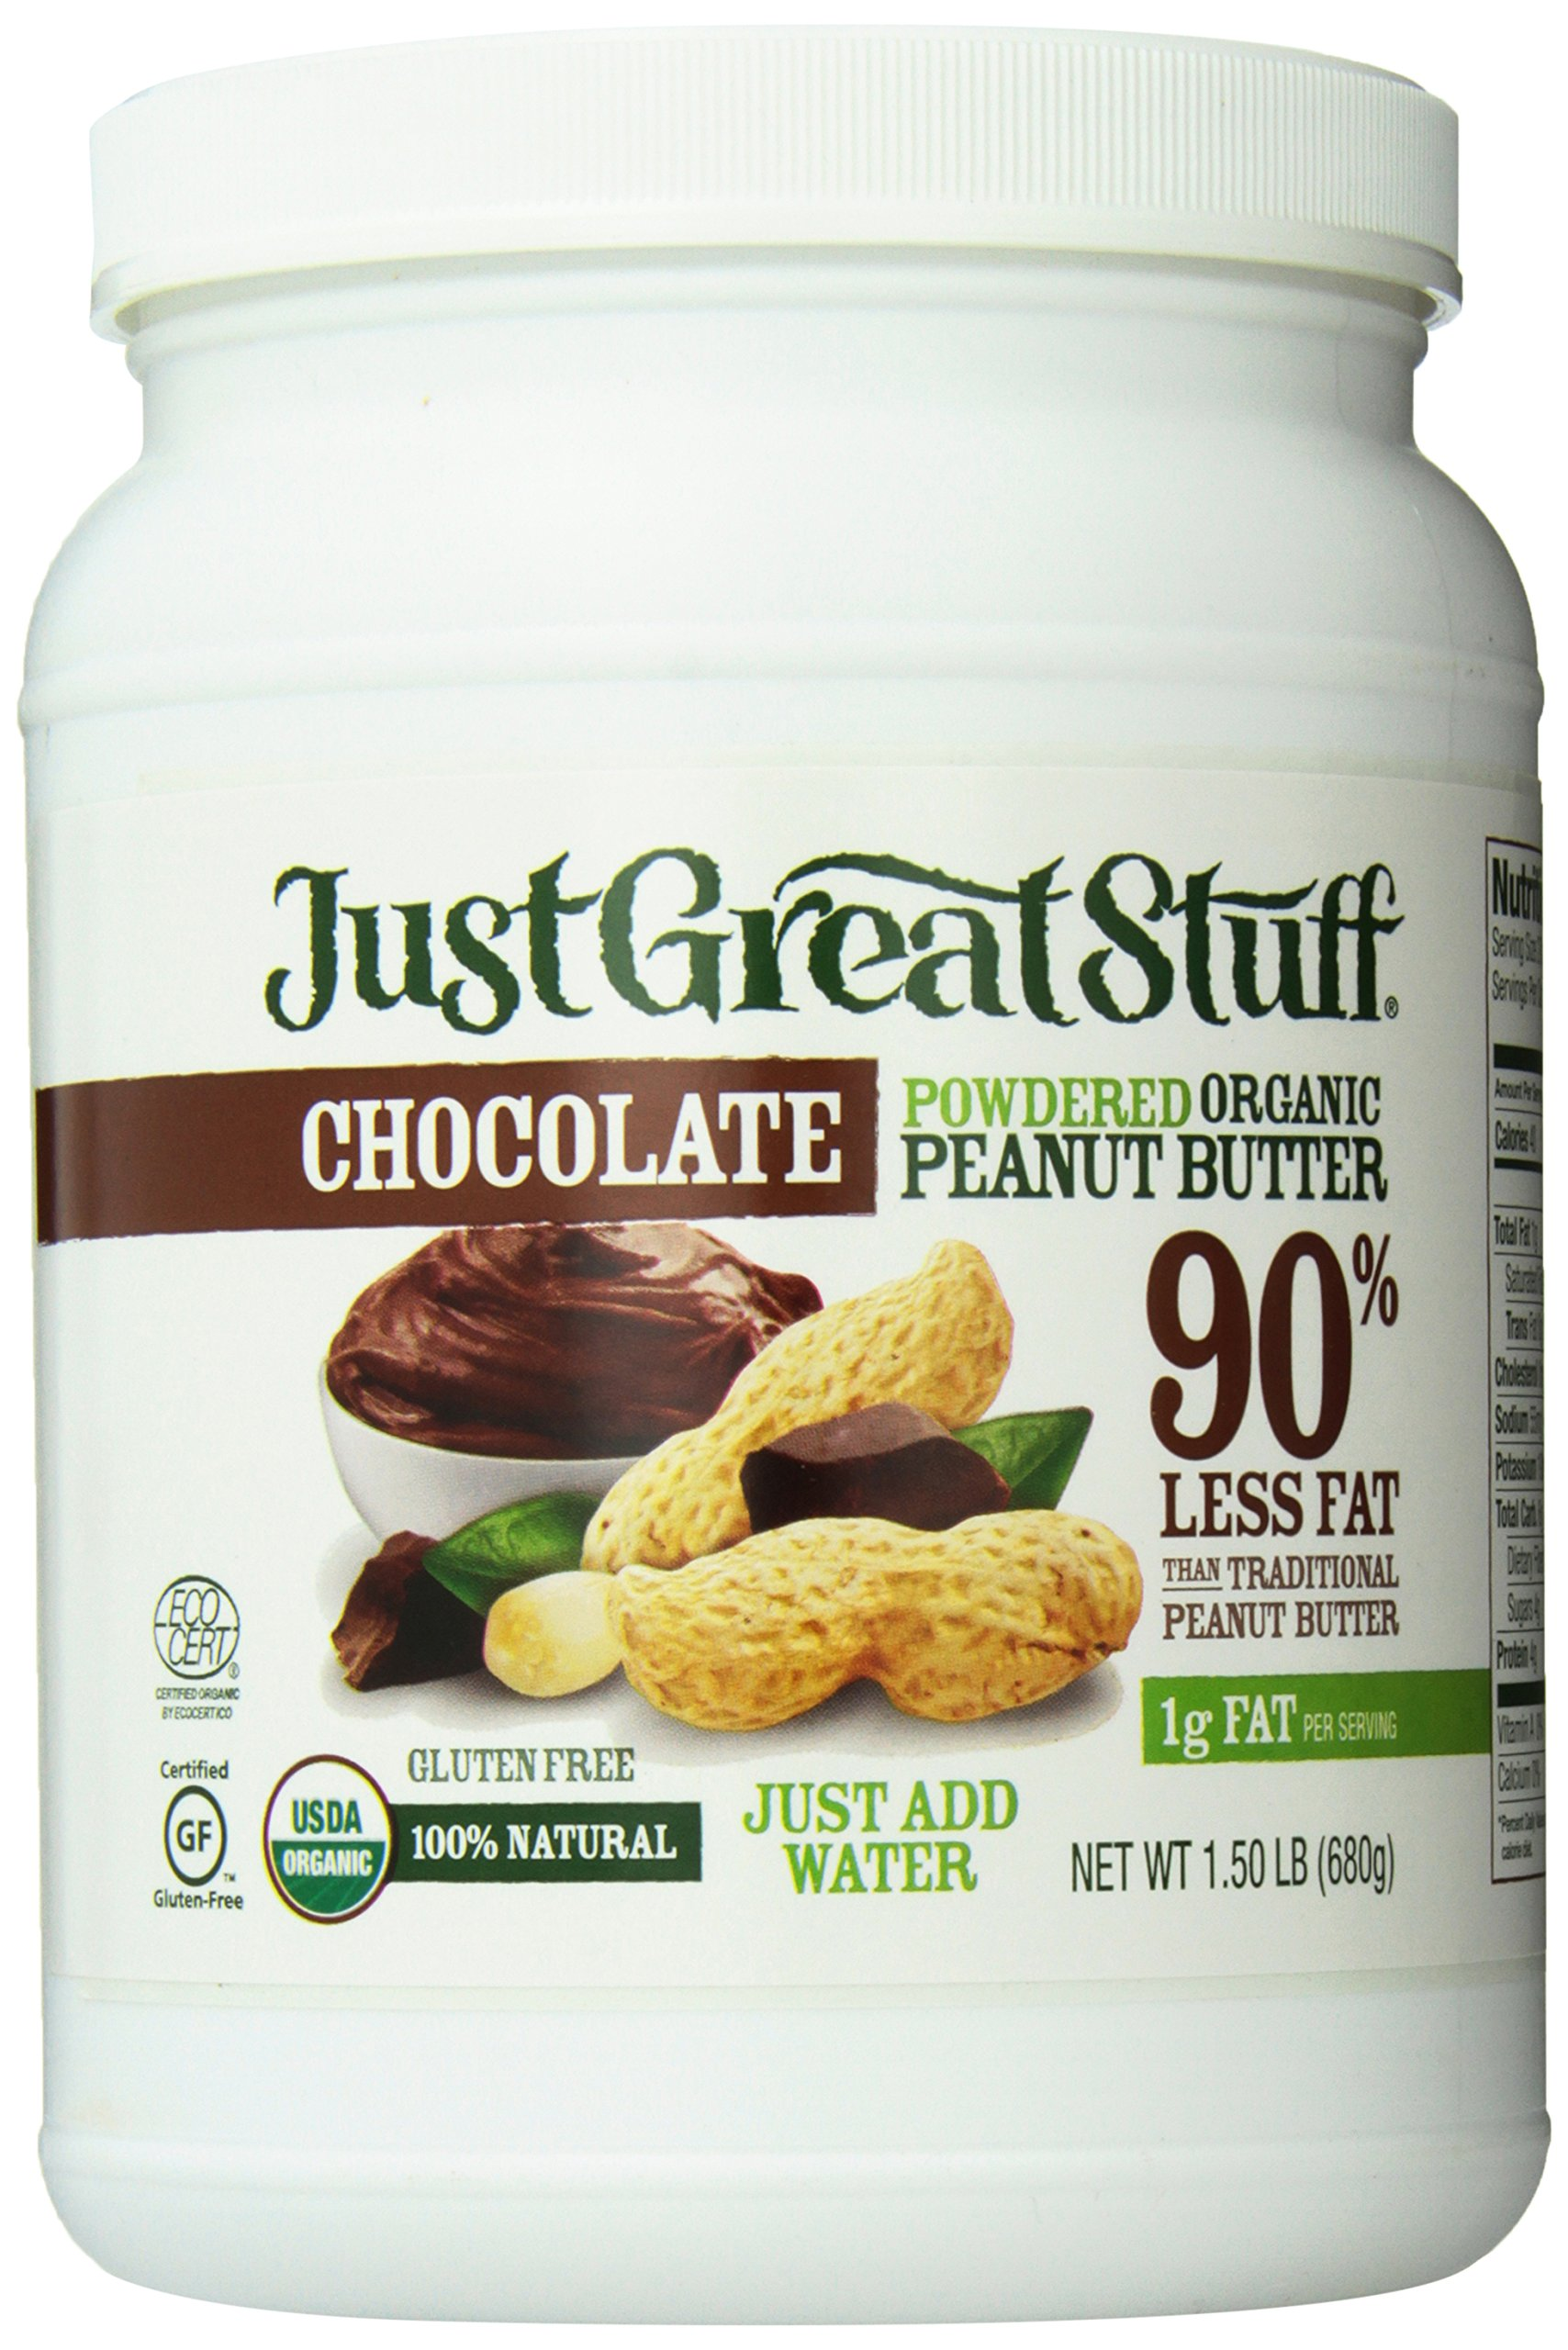 Betty Lou's Organic Chocolate Powdered Peanut Butter, 1.5 Pound (Packaging May Vary)